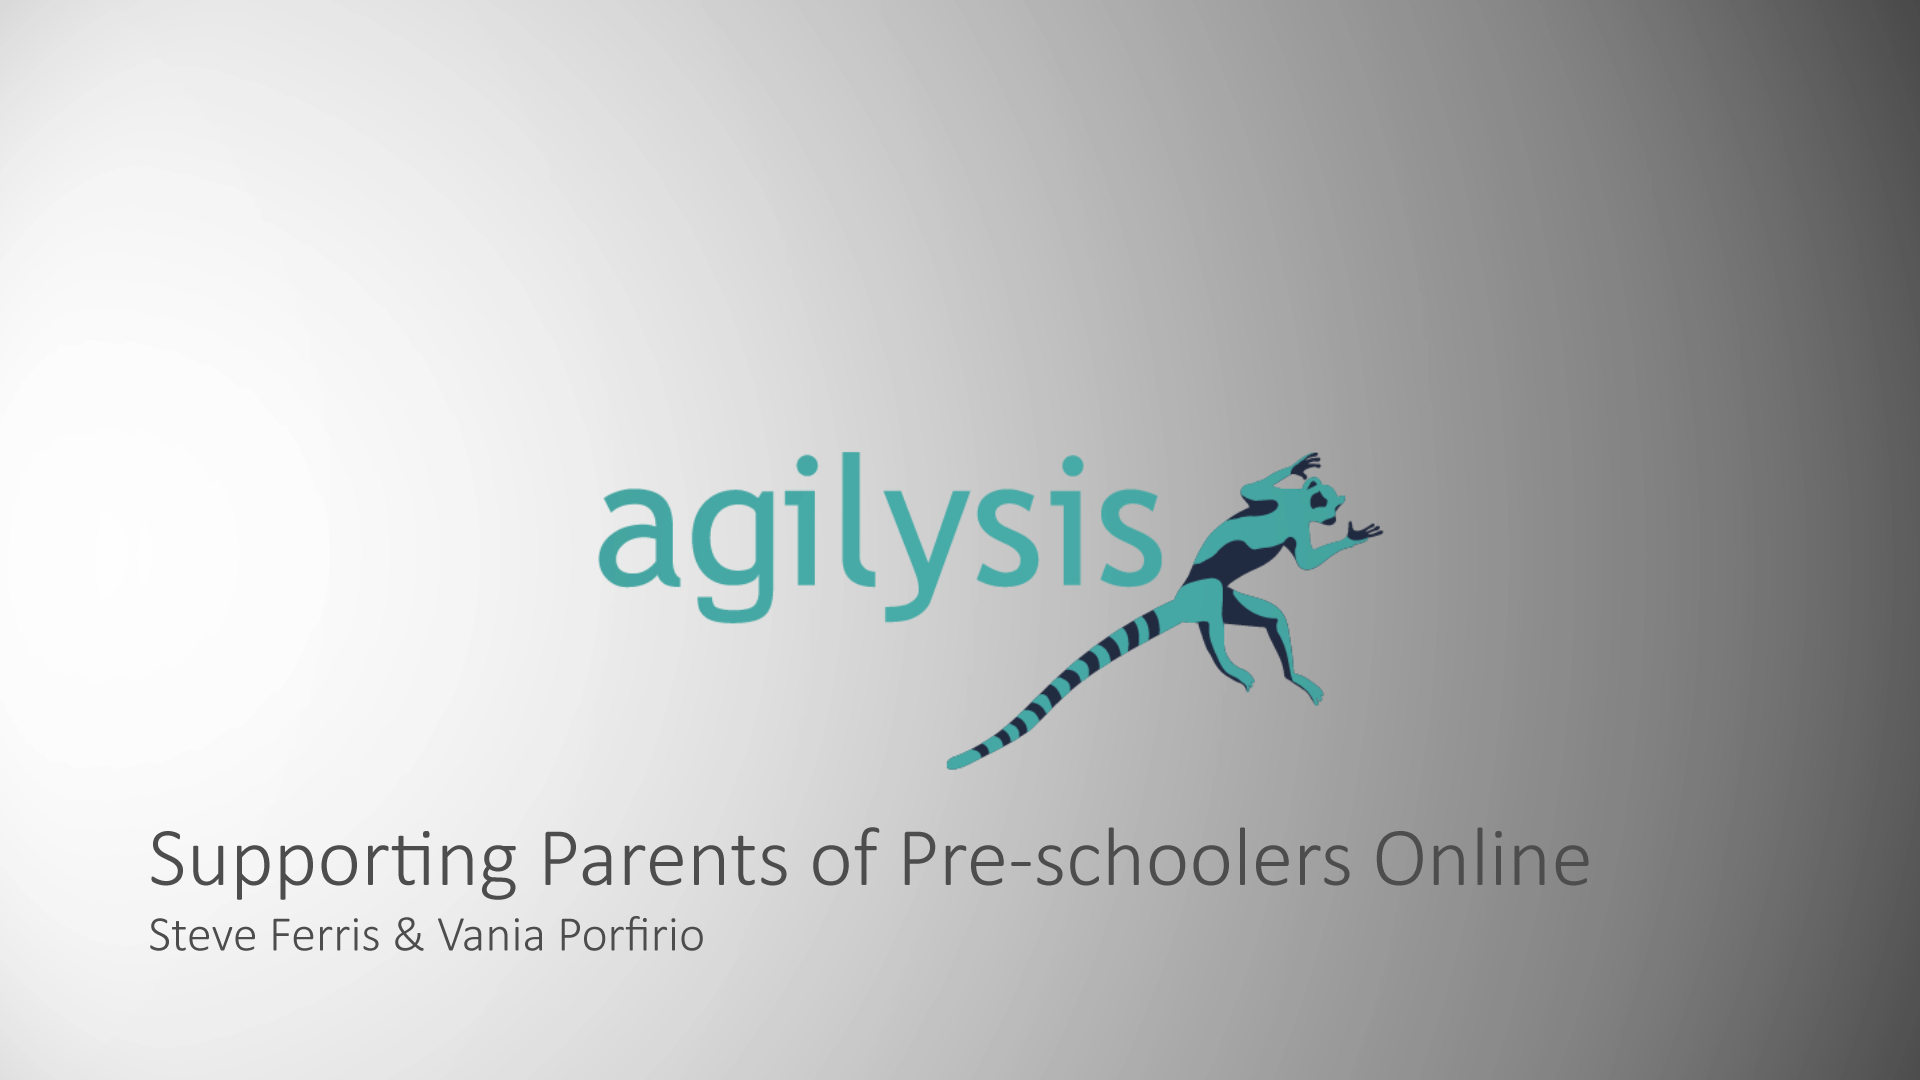 Supporting Parents of Pre-schoolers Online